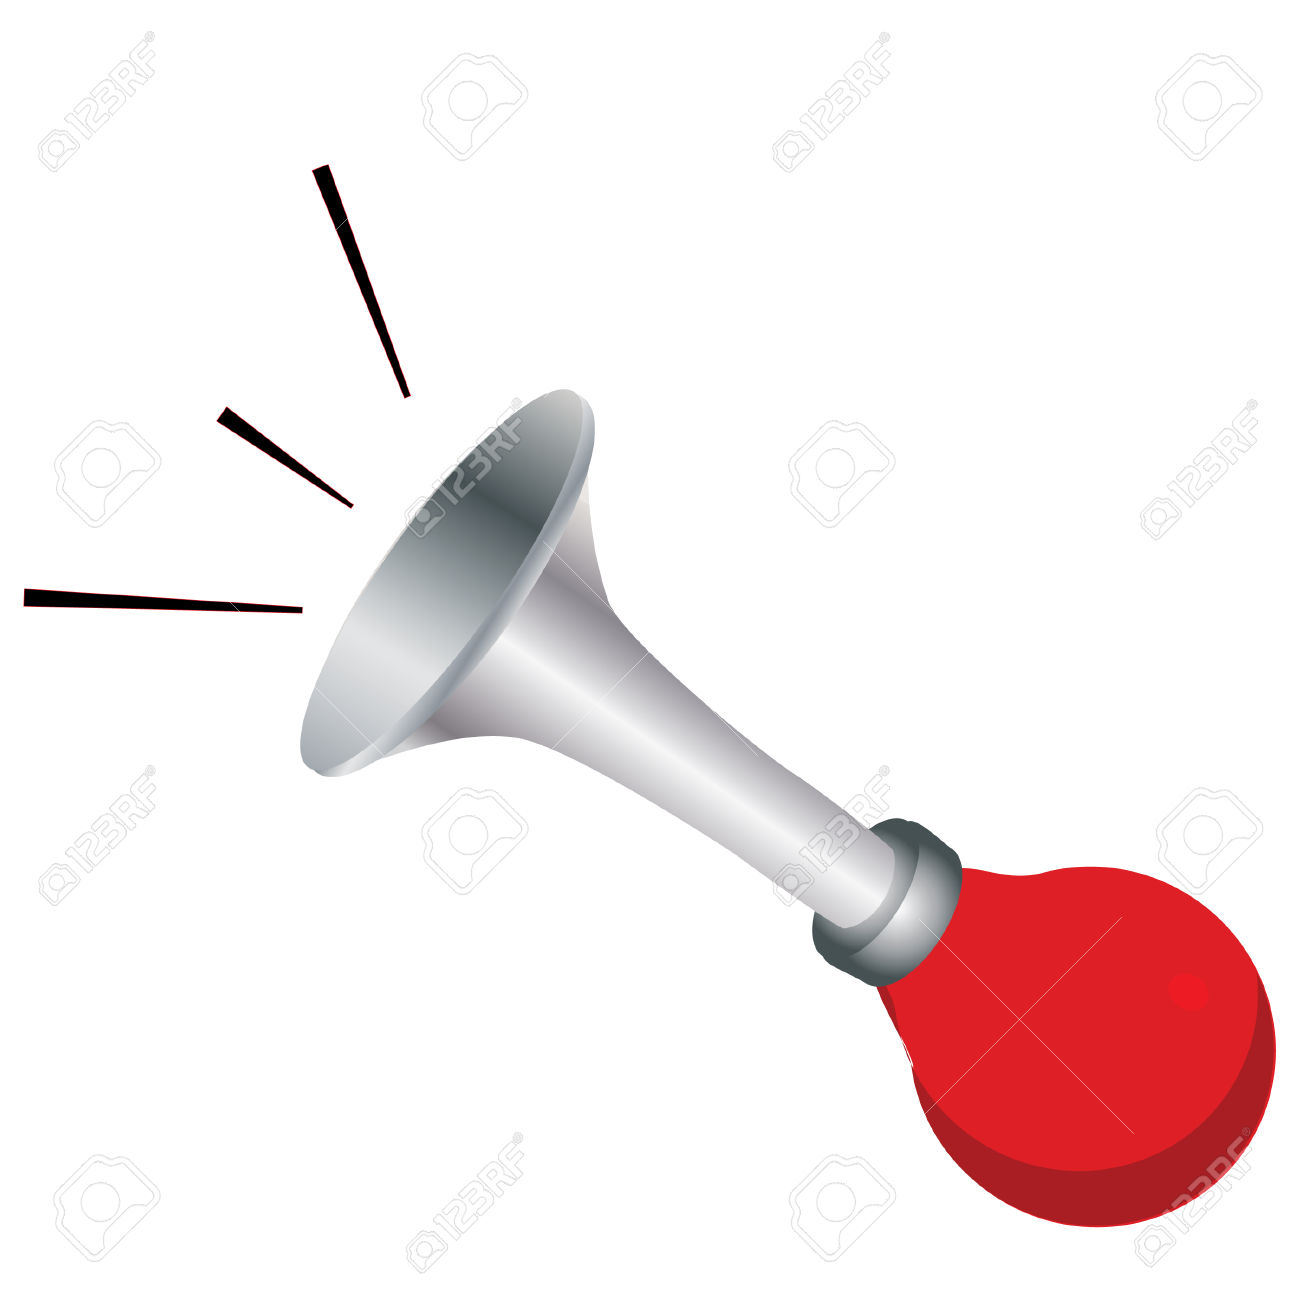 Red Klaxon, Klaxon Vector, Horn, Isolated On White, Buzzer, Hooter.